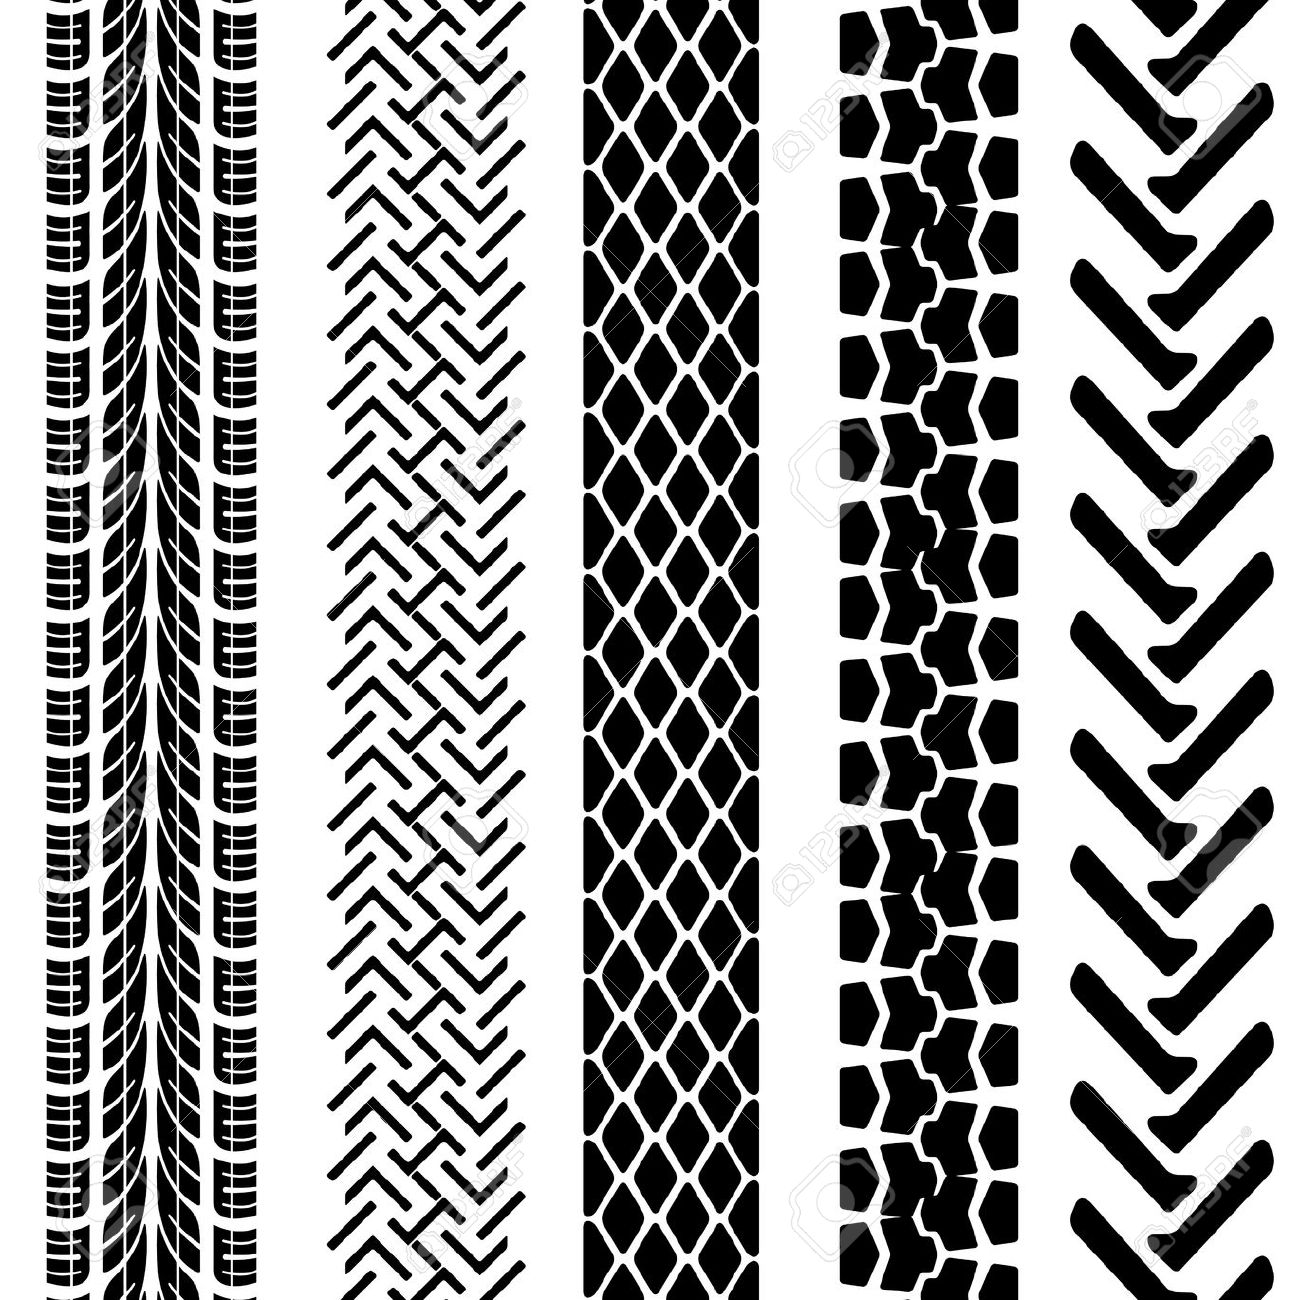 Tire tread patterns clipart picture free Tire tread patterns clipart - ClipartFest picture free